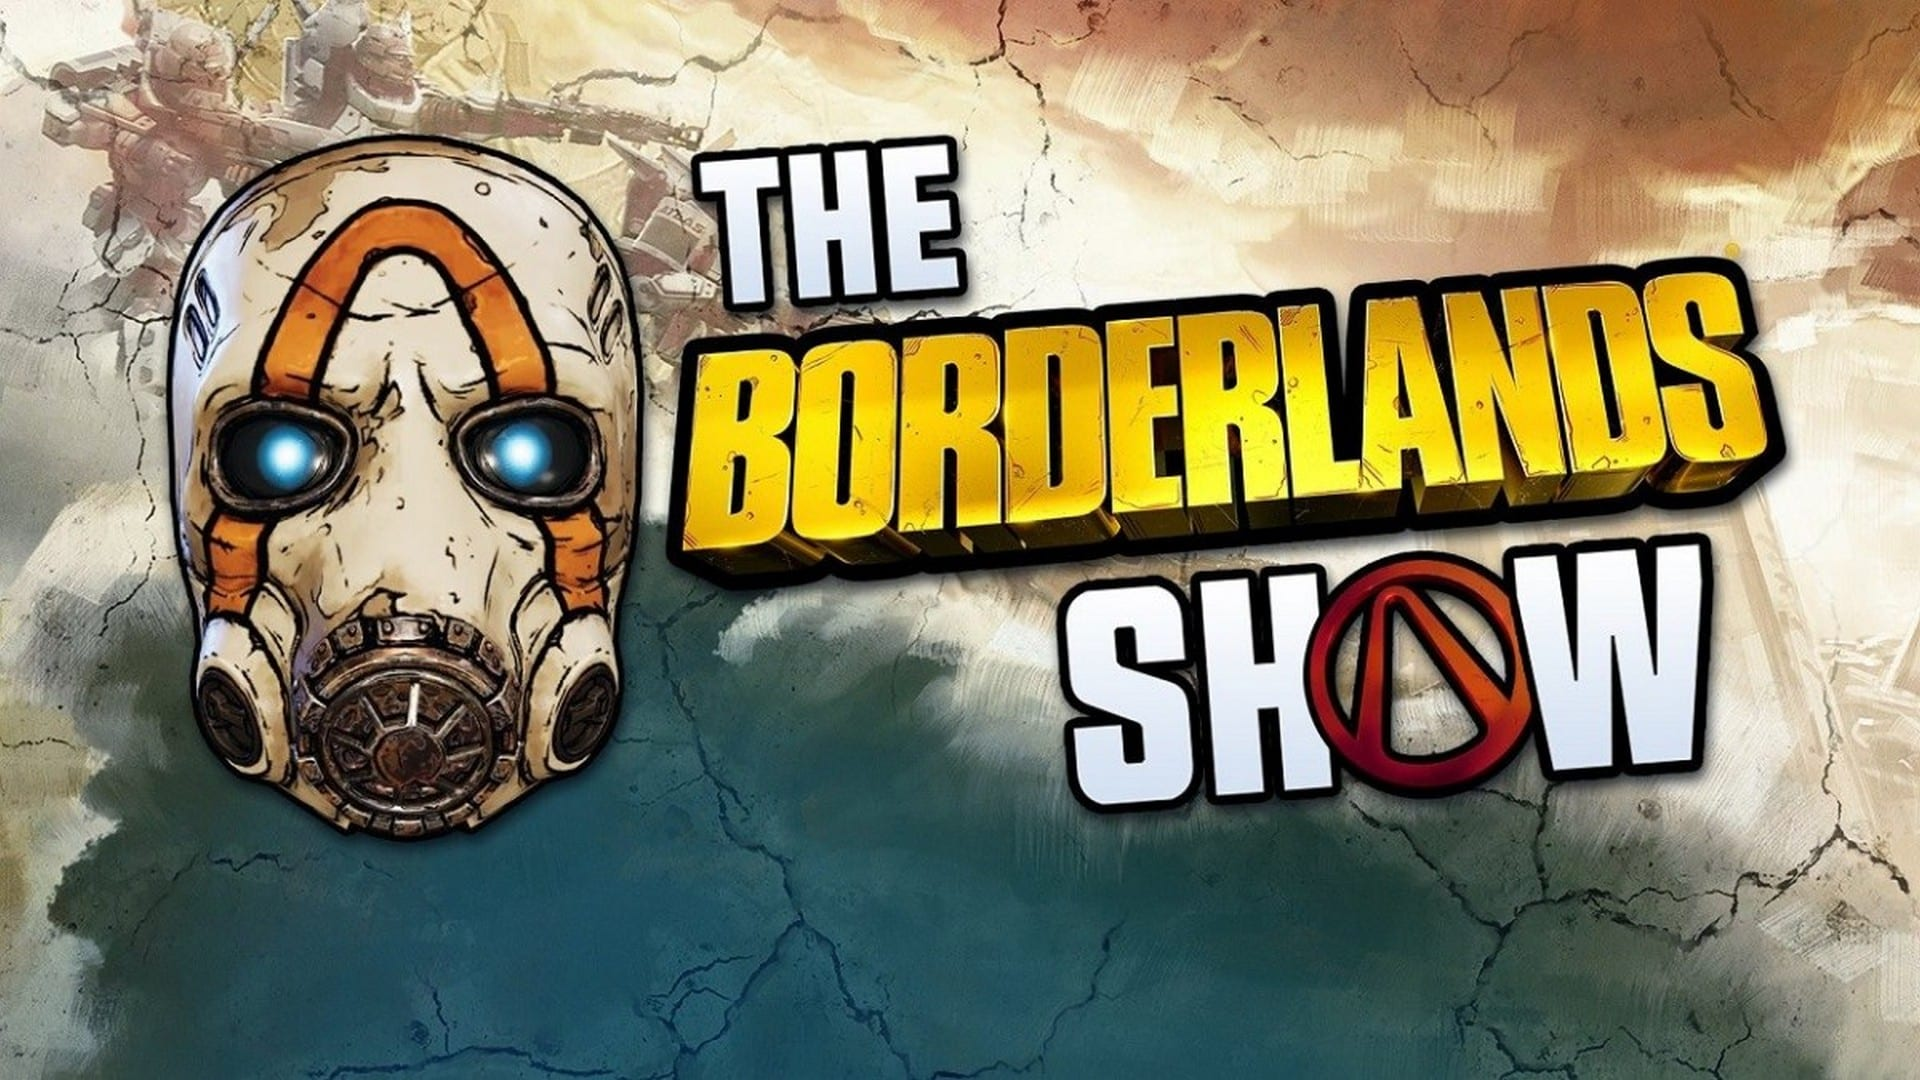 Borderlands 3 Holiday Trailer And Discounts Headline Latest Episode of The Borderlands Show